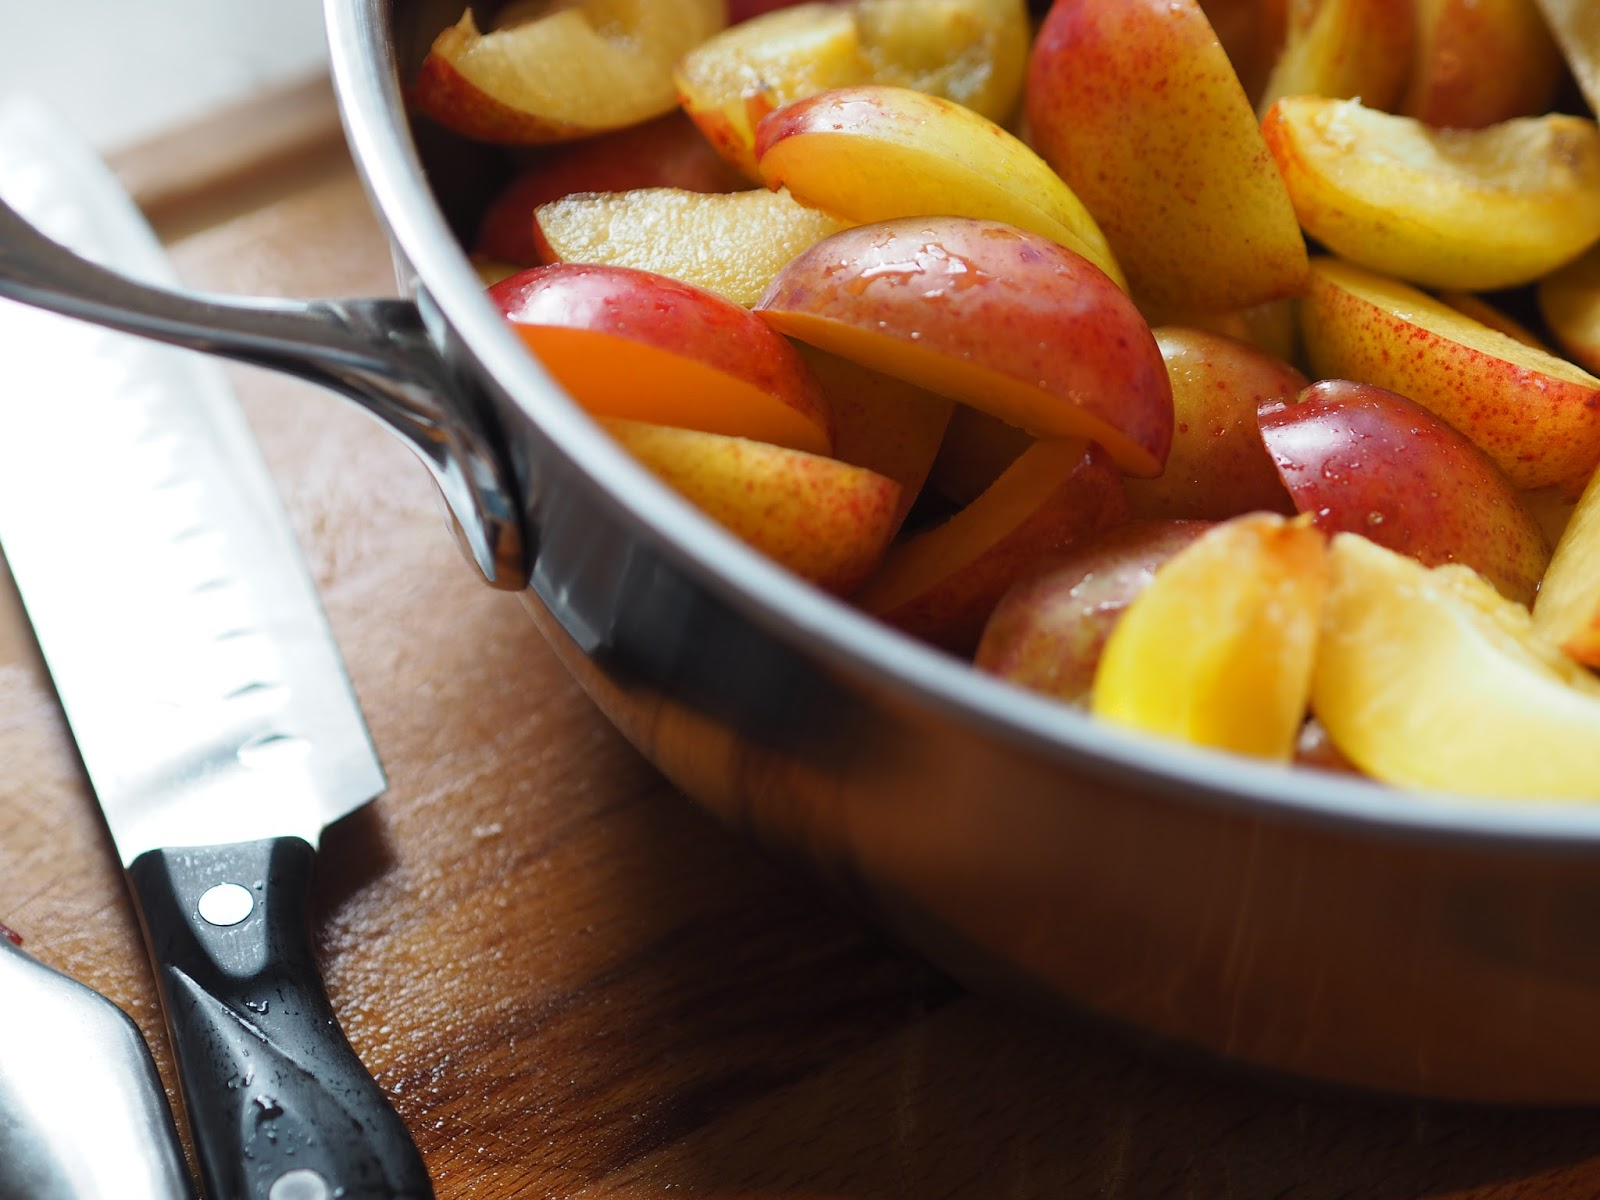 Knife and Chopped Plums